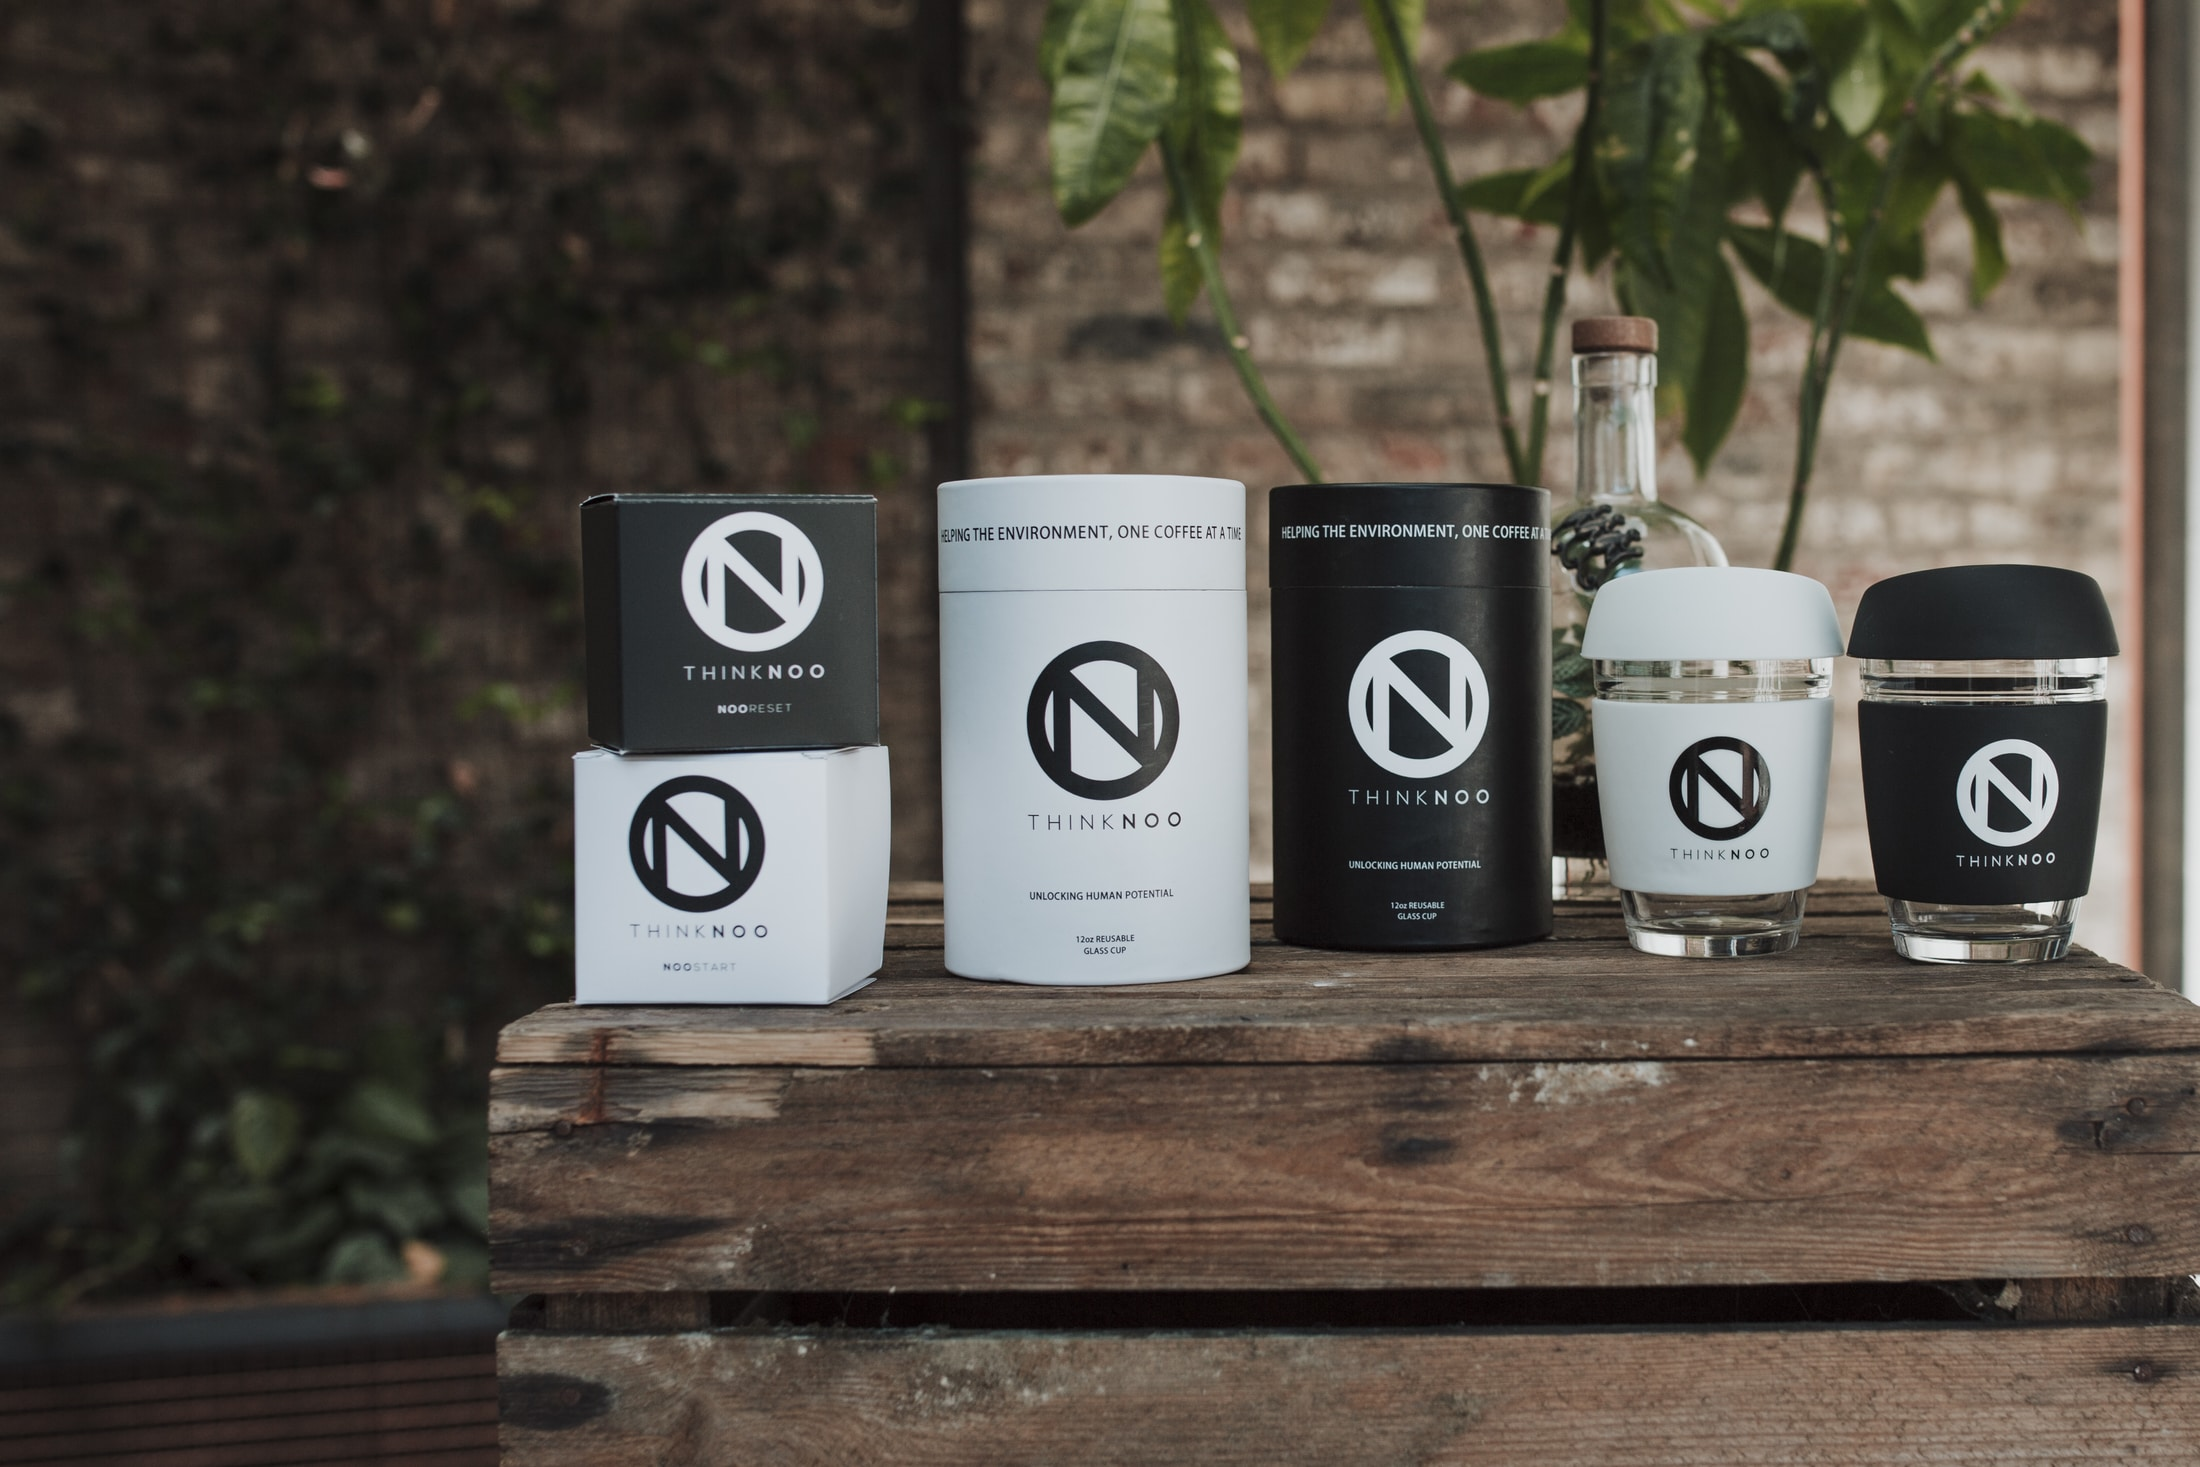 THINKNOO's product range, including their eco-friendly coffee cups: NOOreuse